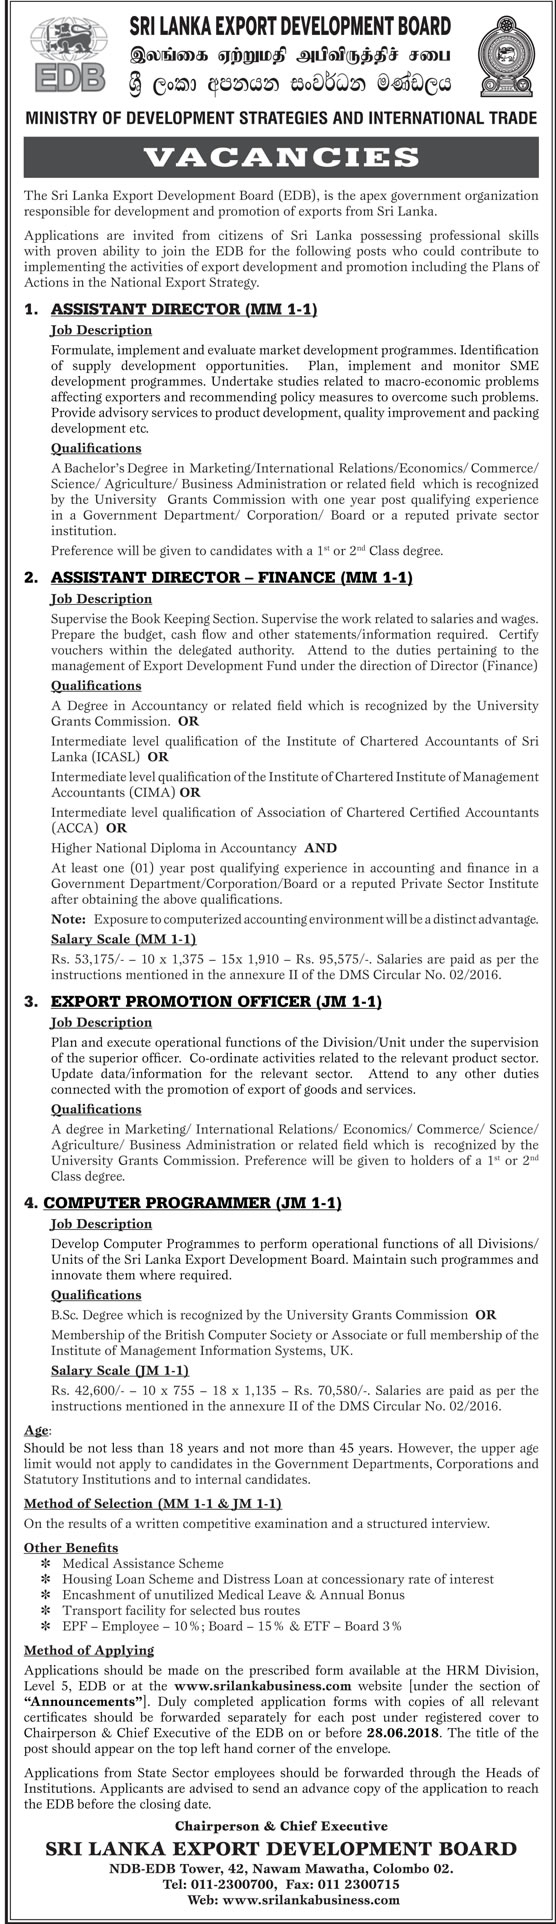 Assistant Director, Export Promotion Officer, Computer Programmer